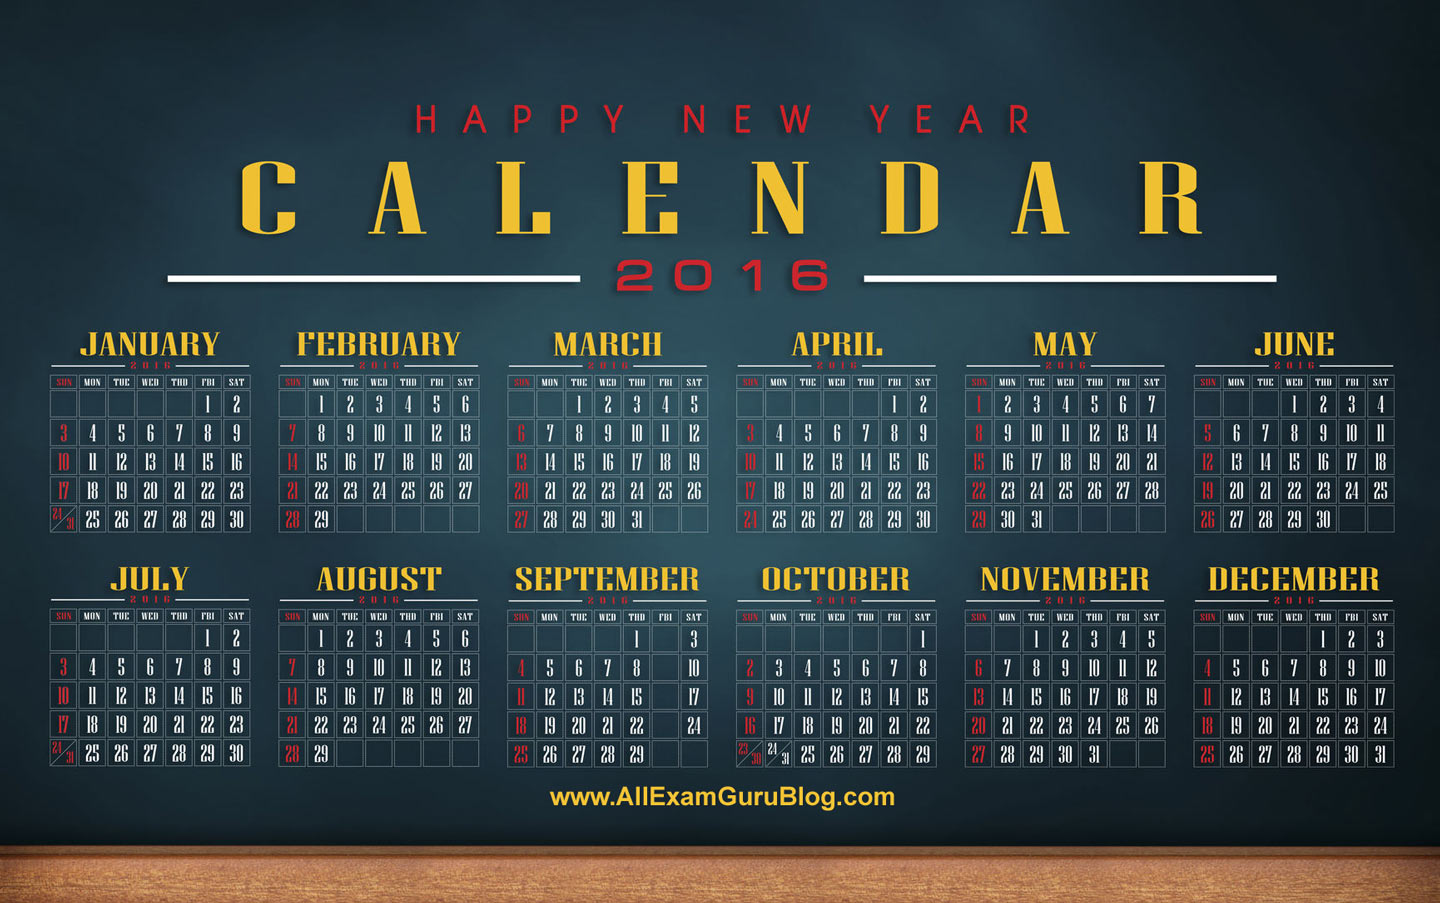 Calendar Wallpaper Pc : Calendar desktop wallpaper download